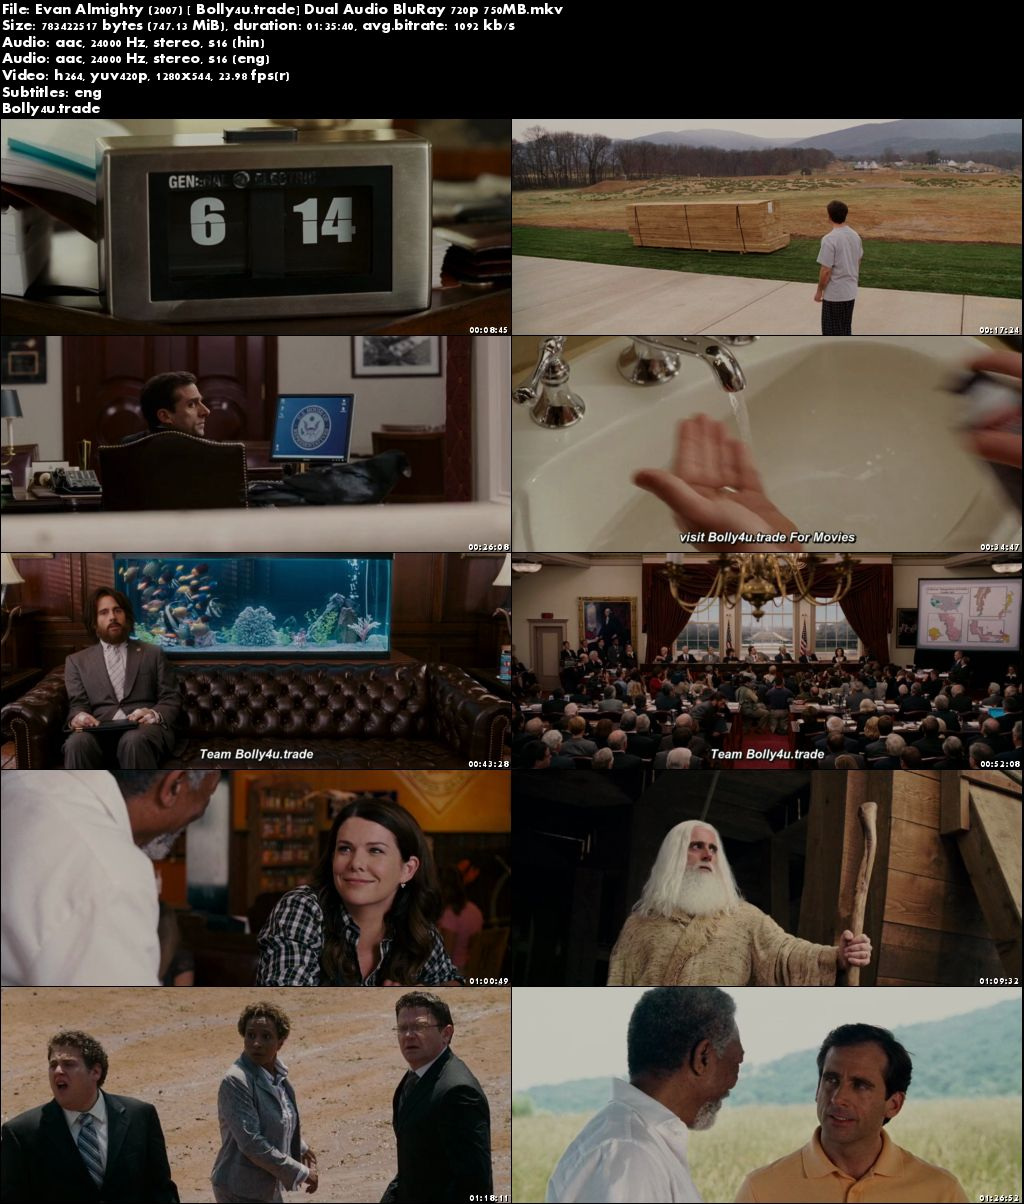 evan almighty full movie download 480p